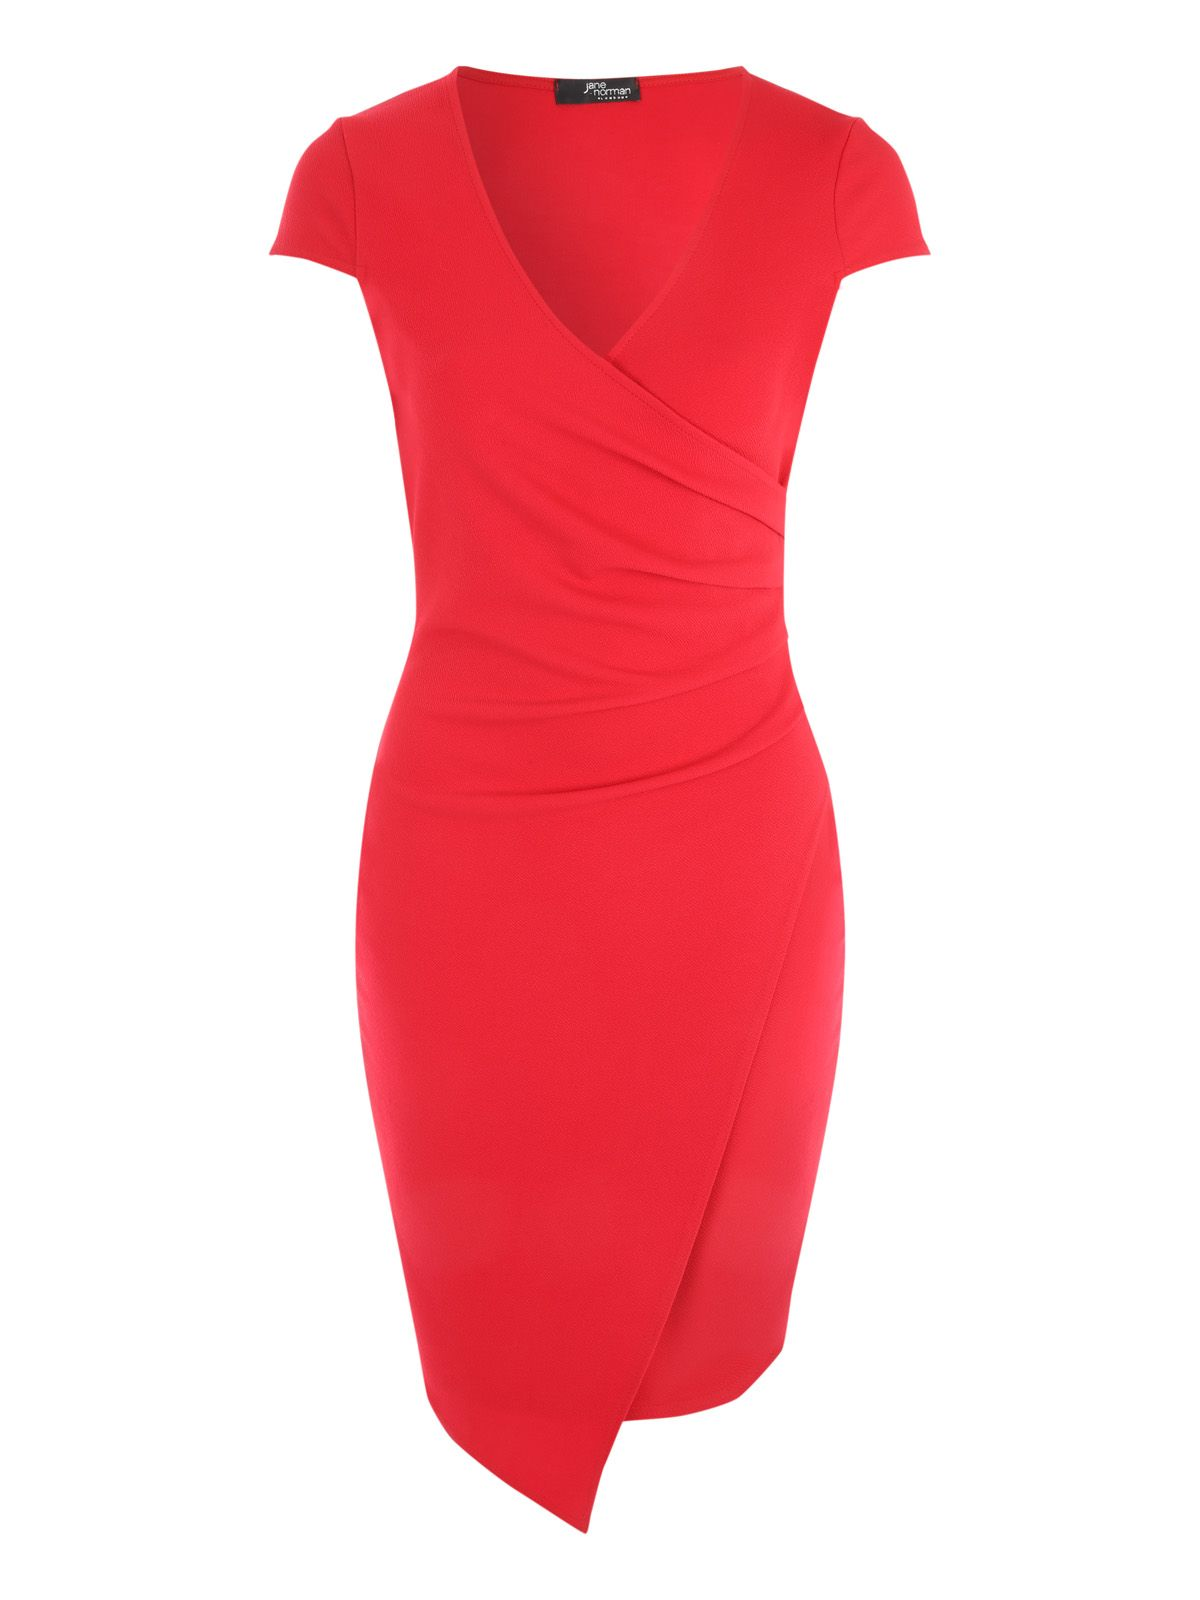 Jane Norman Wrap Asymmetric Dress, Red